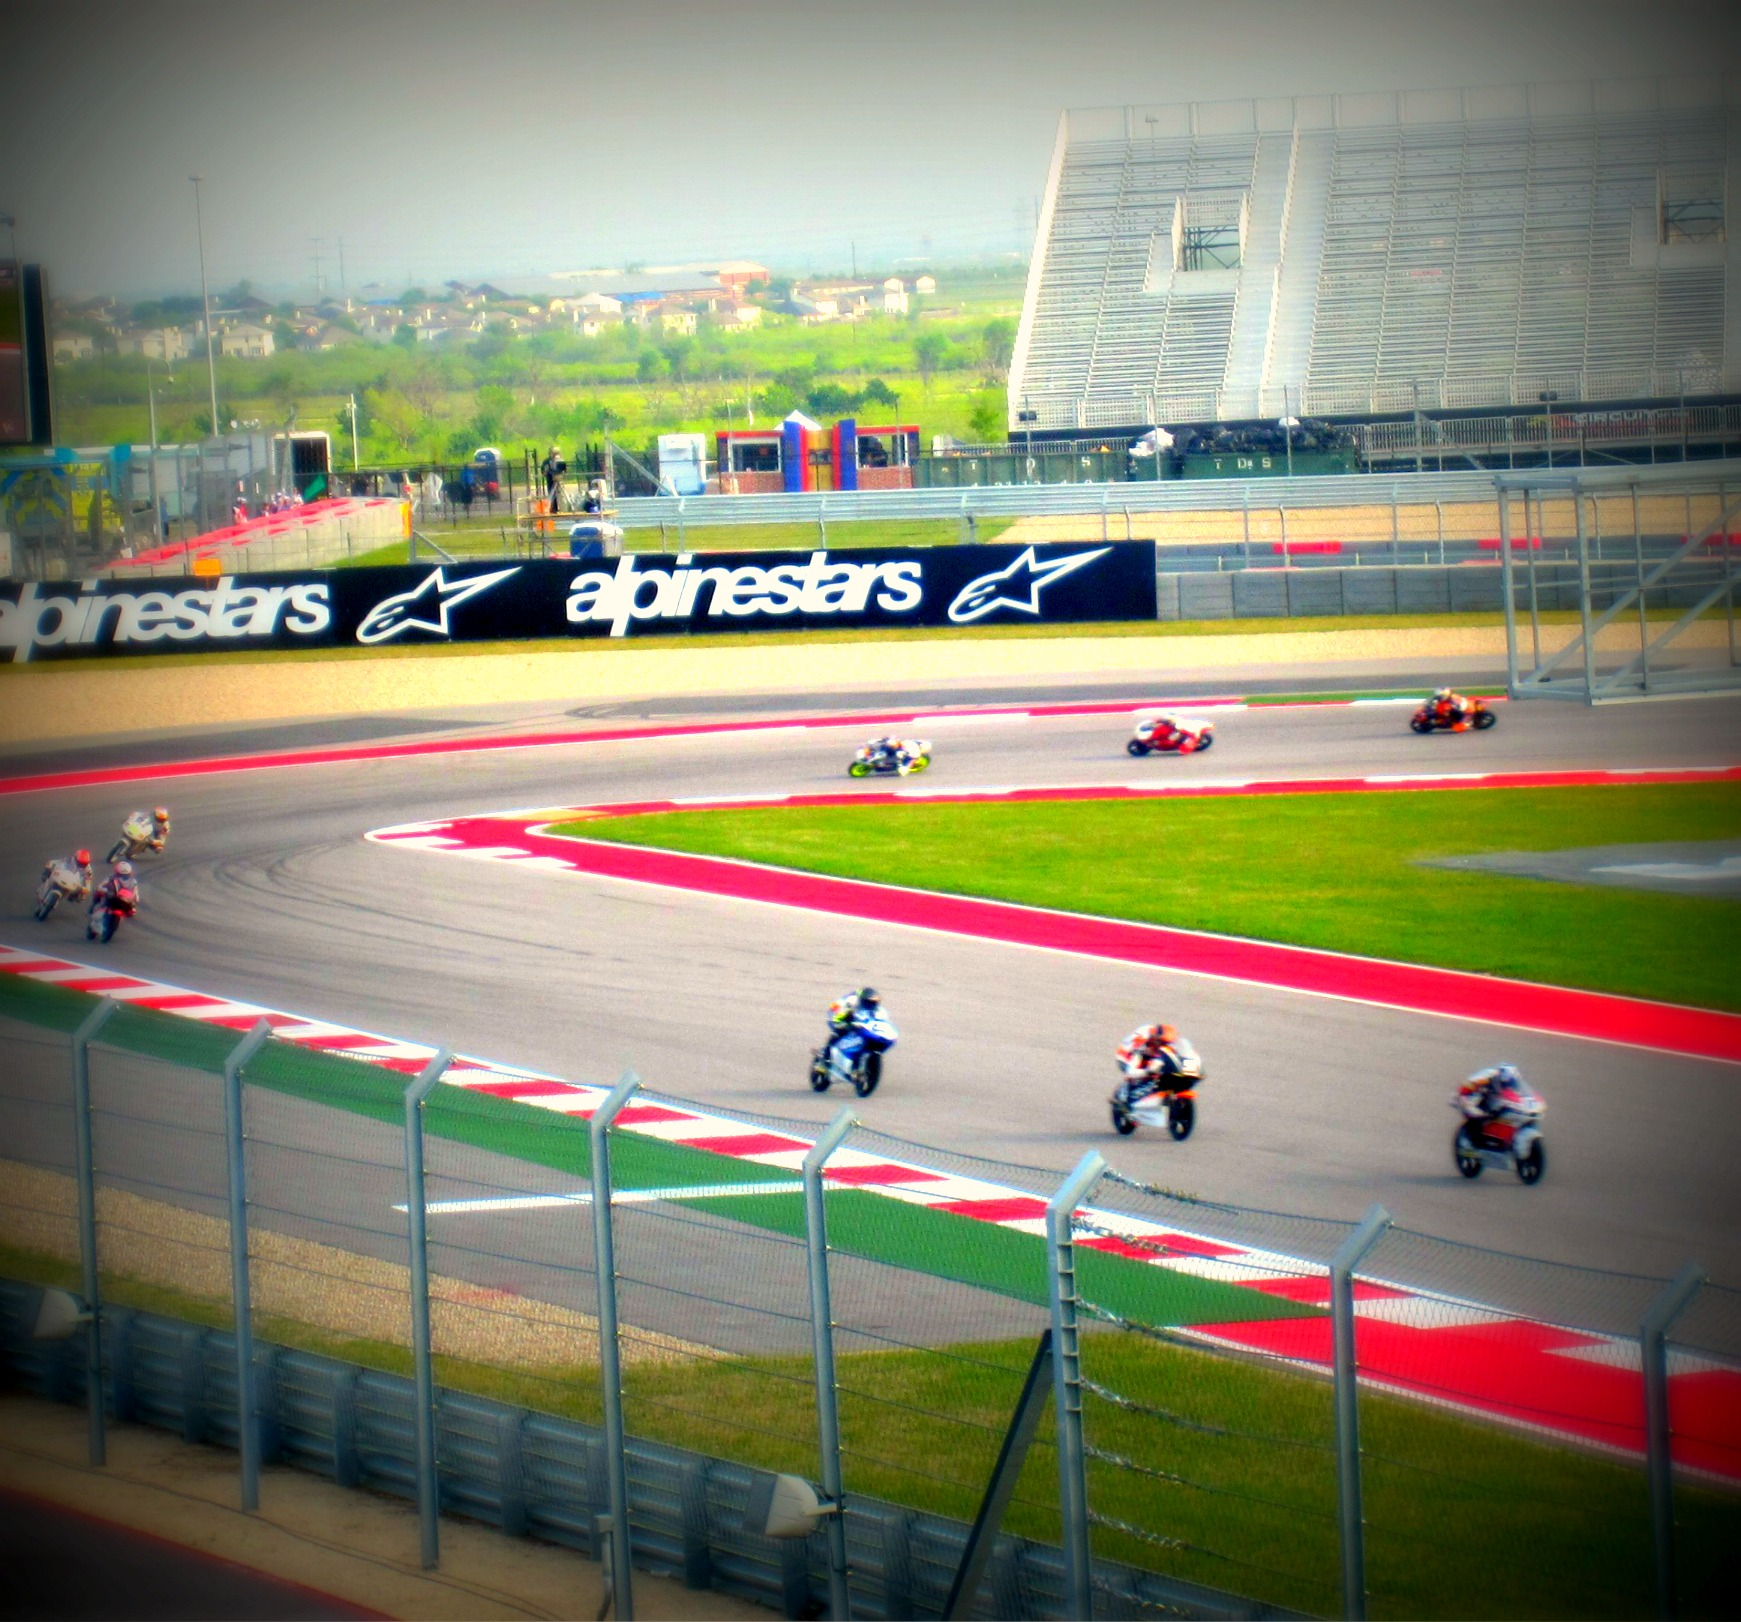 Motogp Austin Texas 2014 Full Race | MotoGP 2017 Info, Video, Points Table